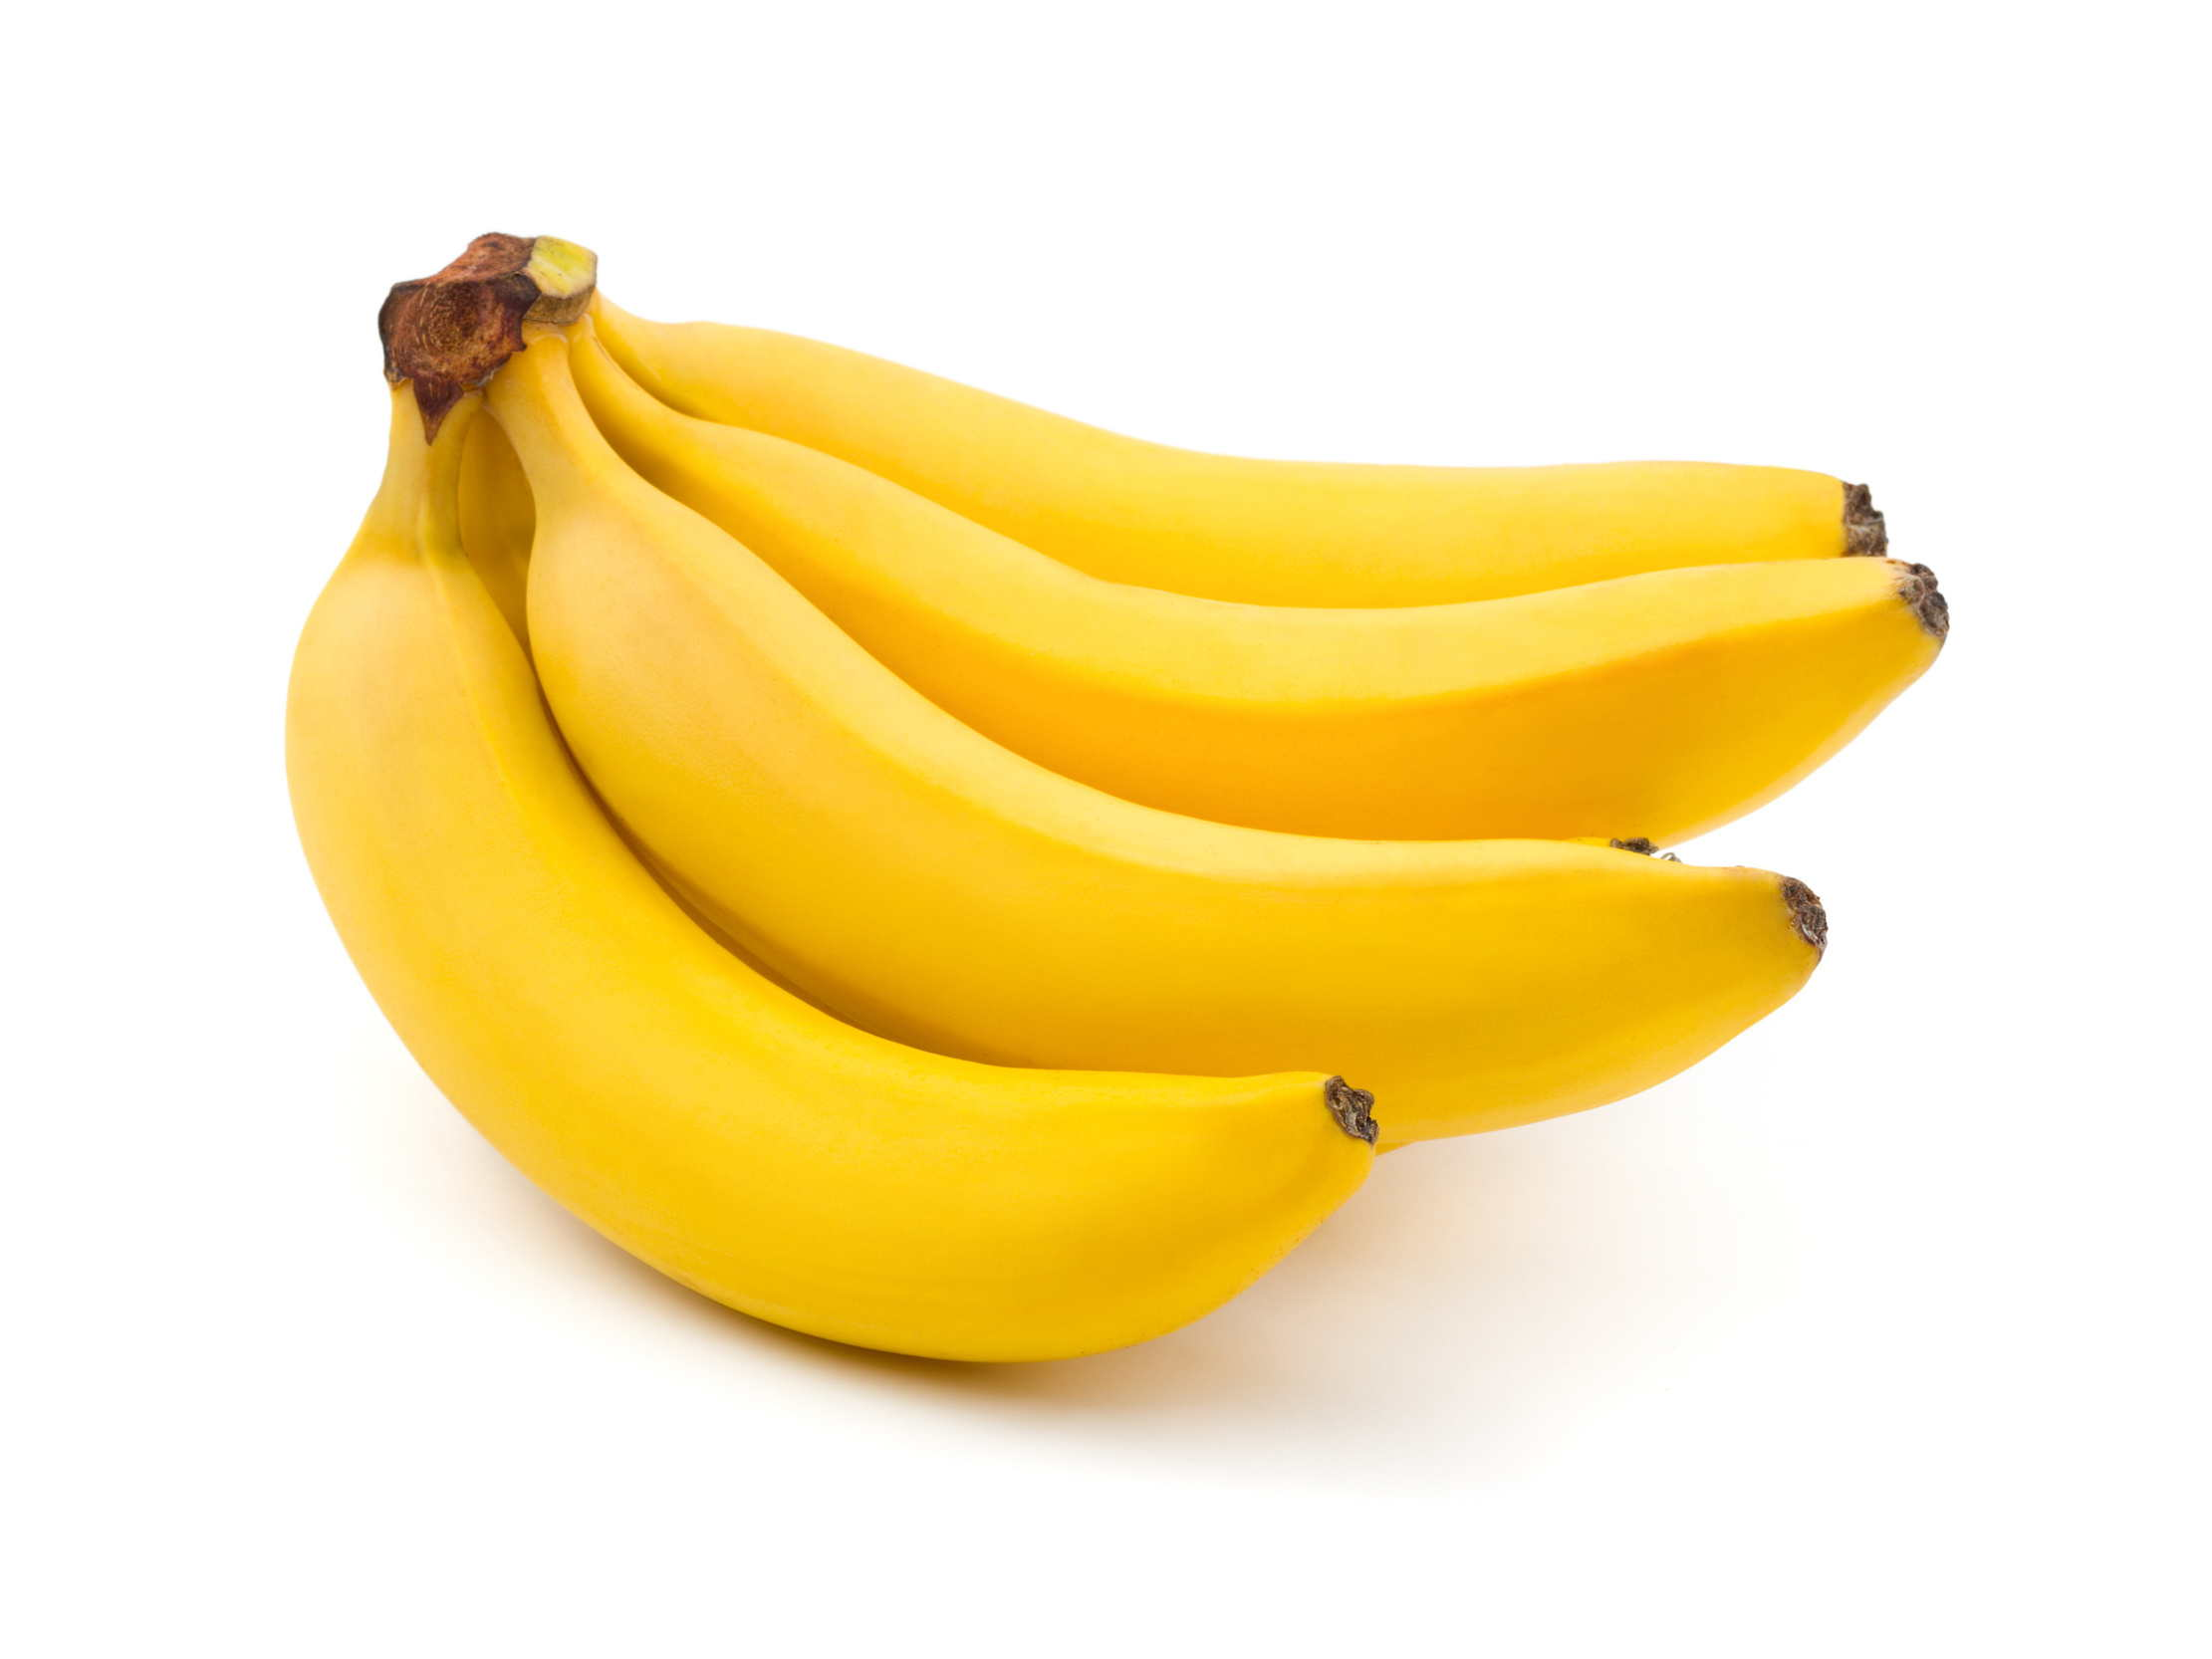 Bananas Shelf Life Now Can Be Extented